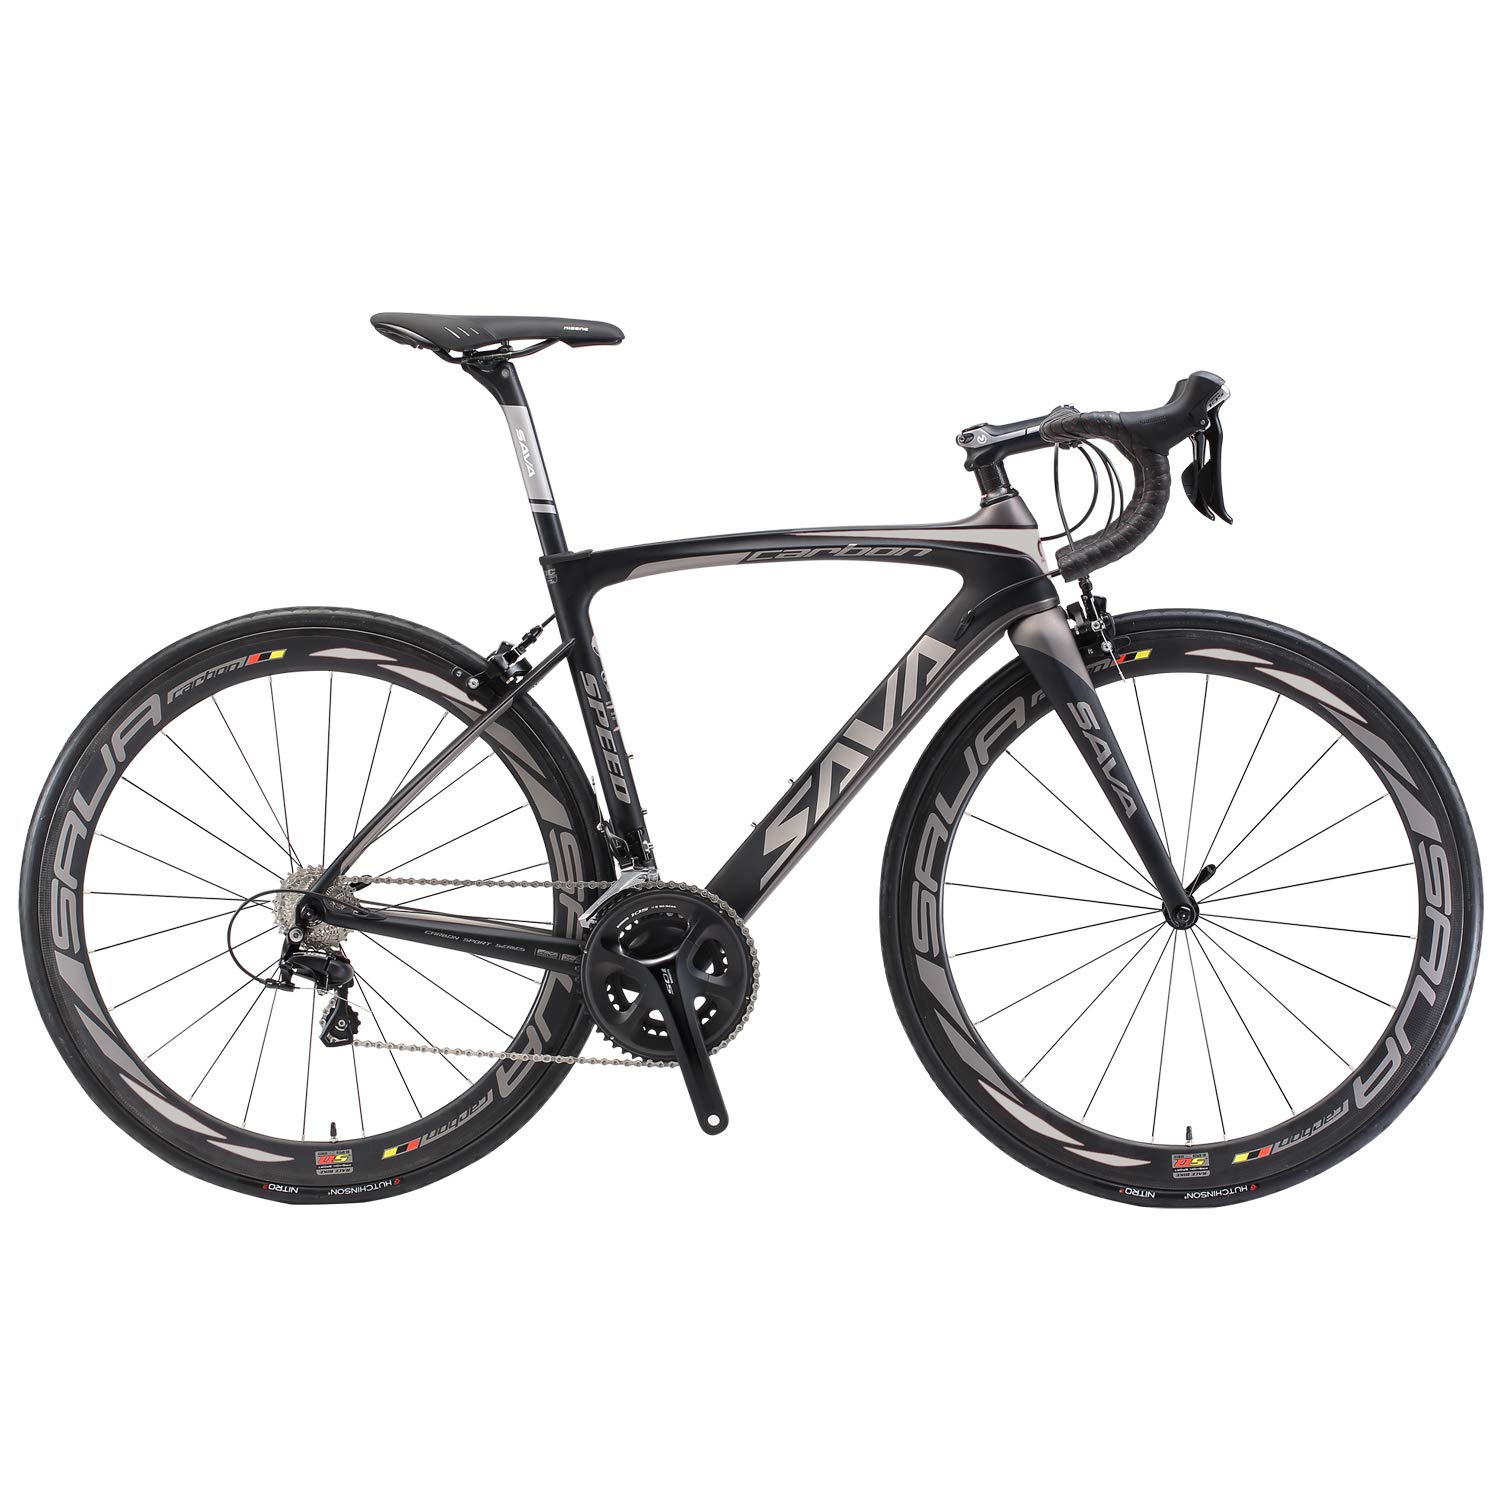 Carbon Fiber Road Bike >> Amazon Com Savadeck Carbon Road Bike Herd9 0 700c Carbon Fiber